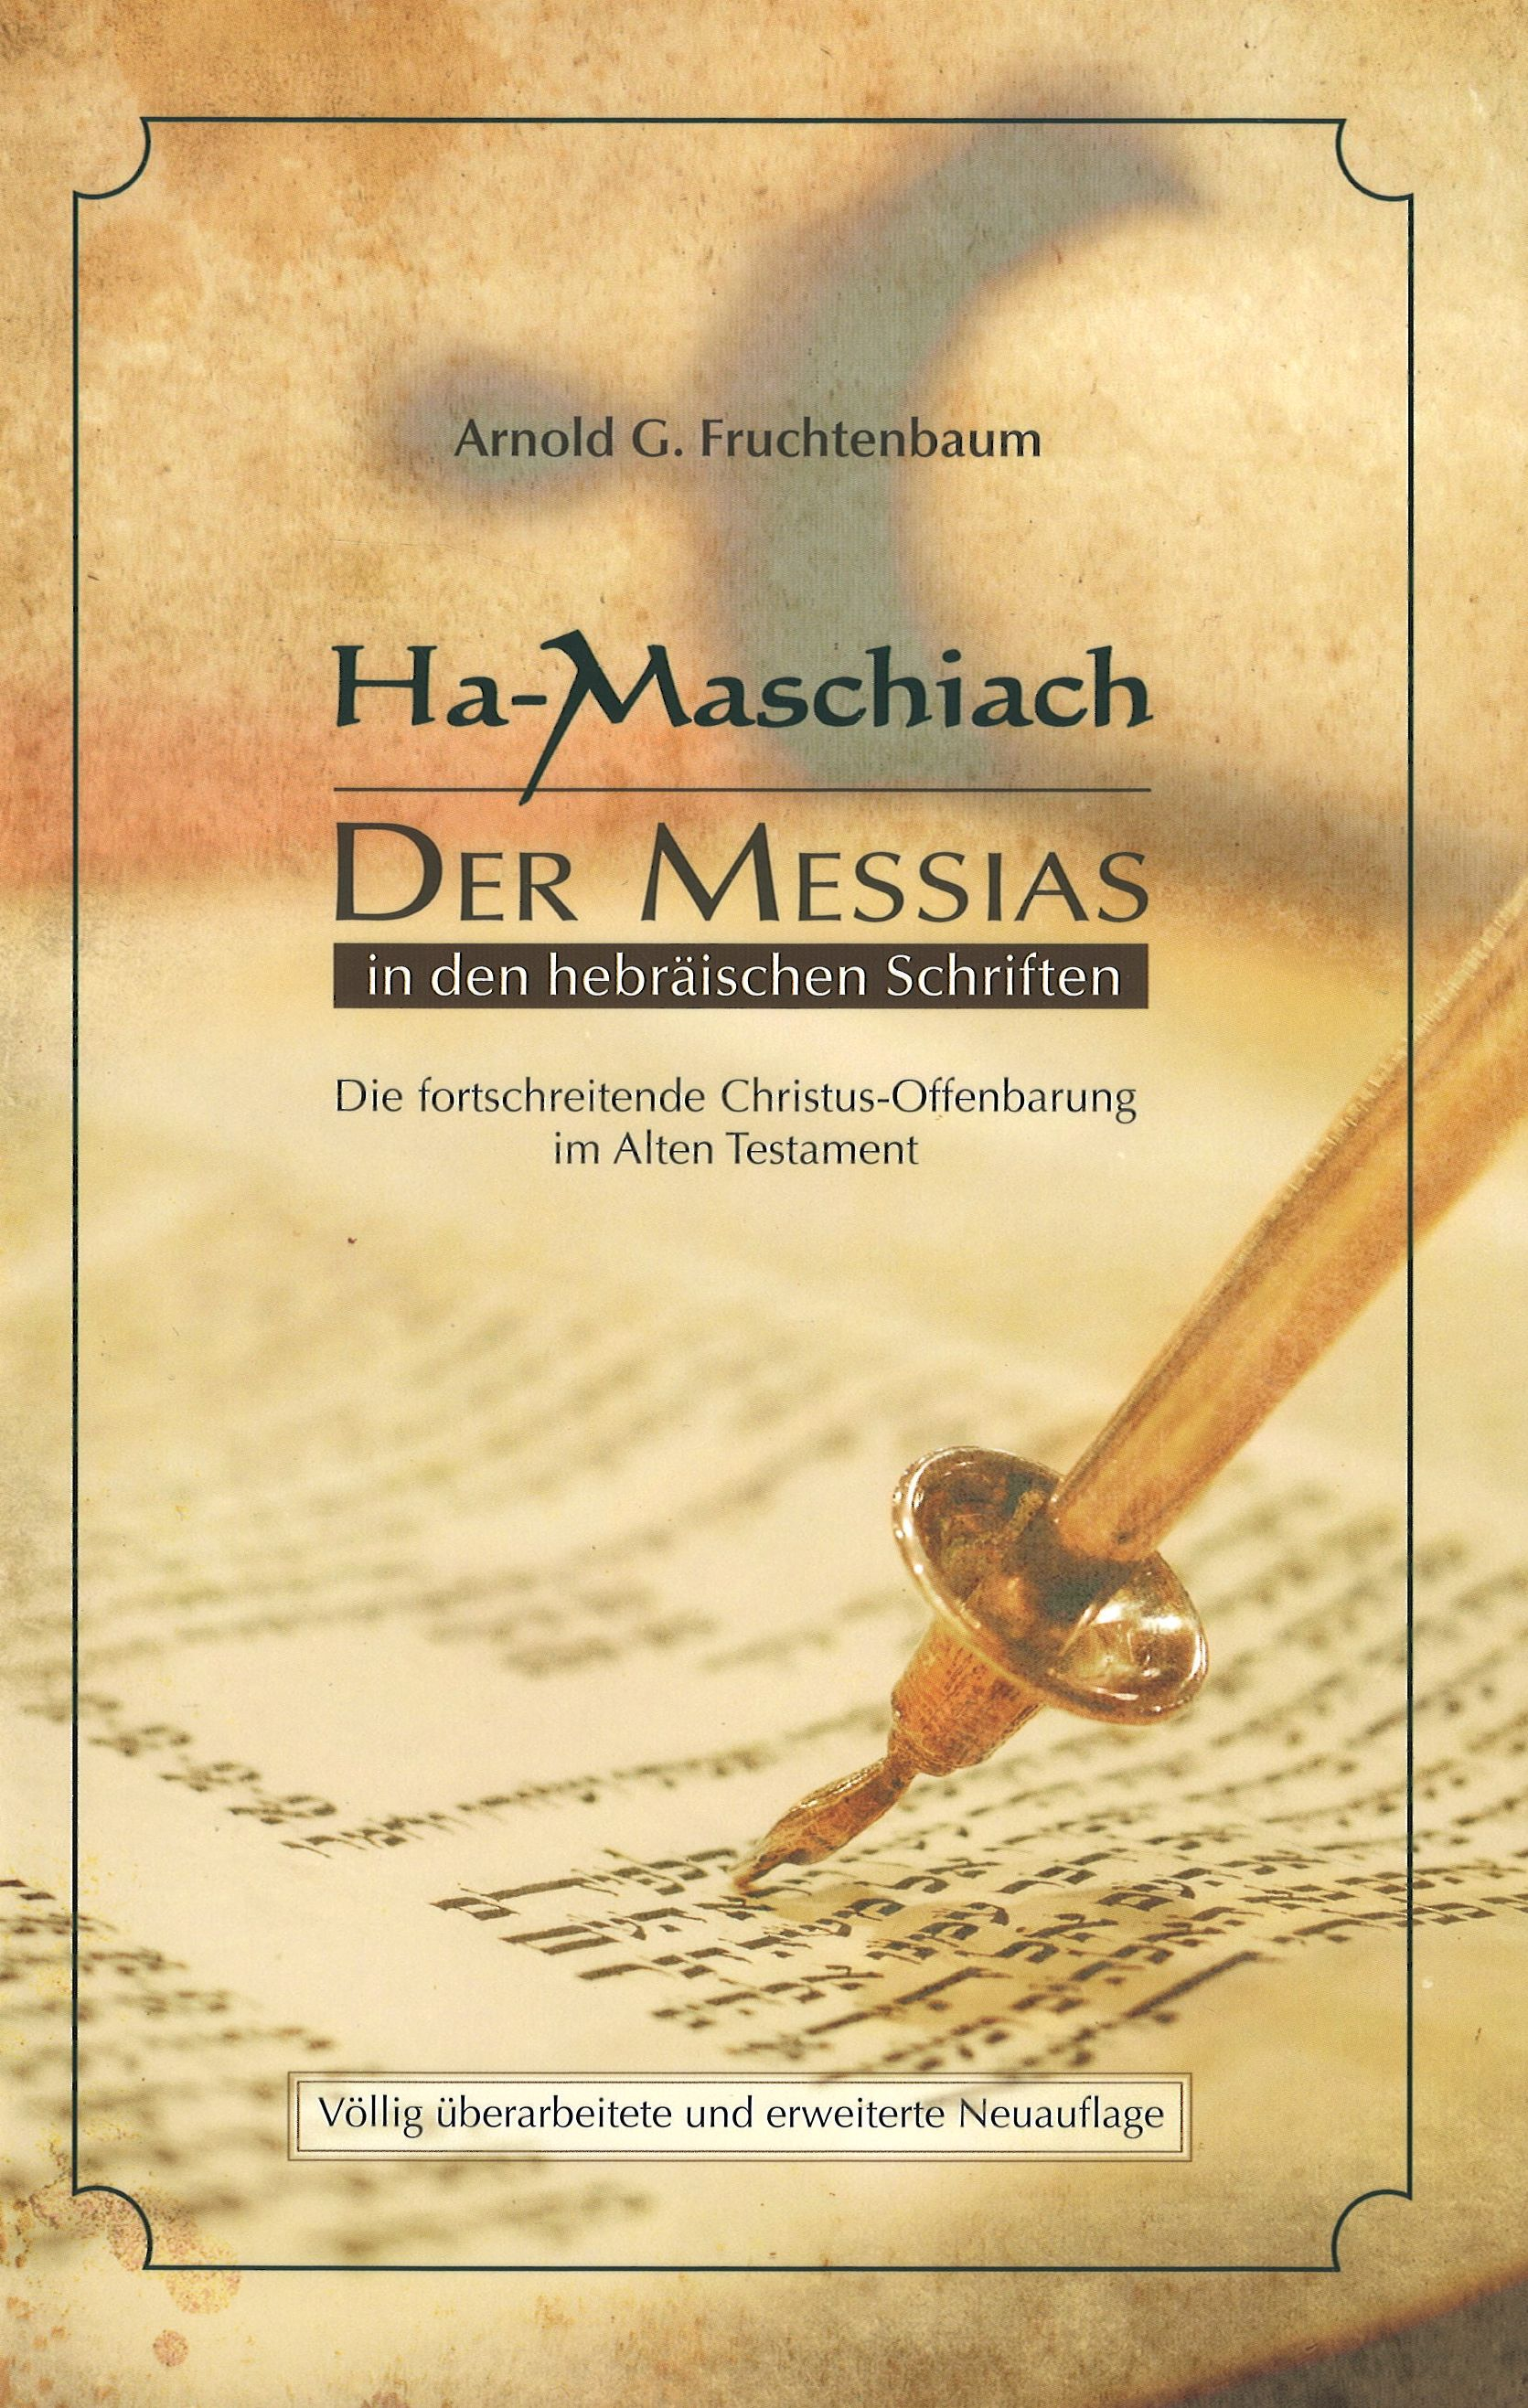 Ha-Maschiach - Der Messias